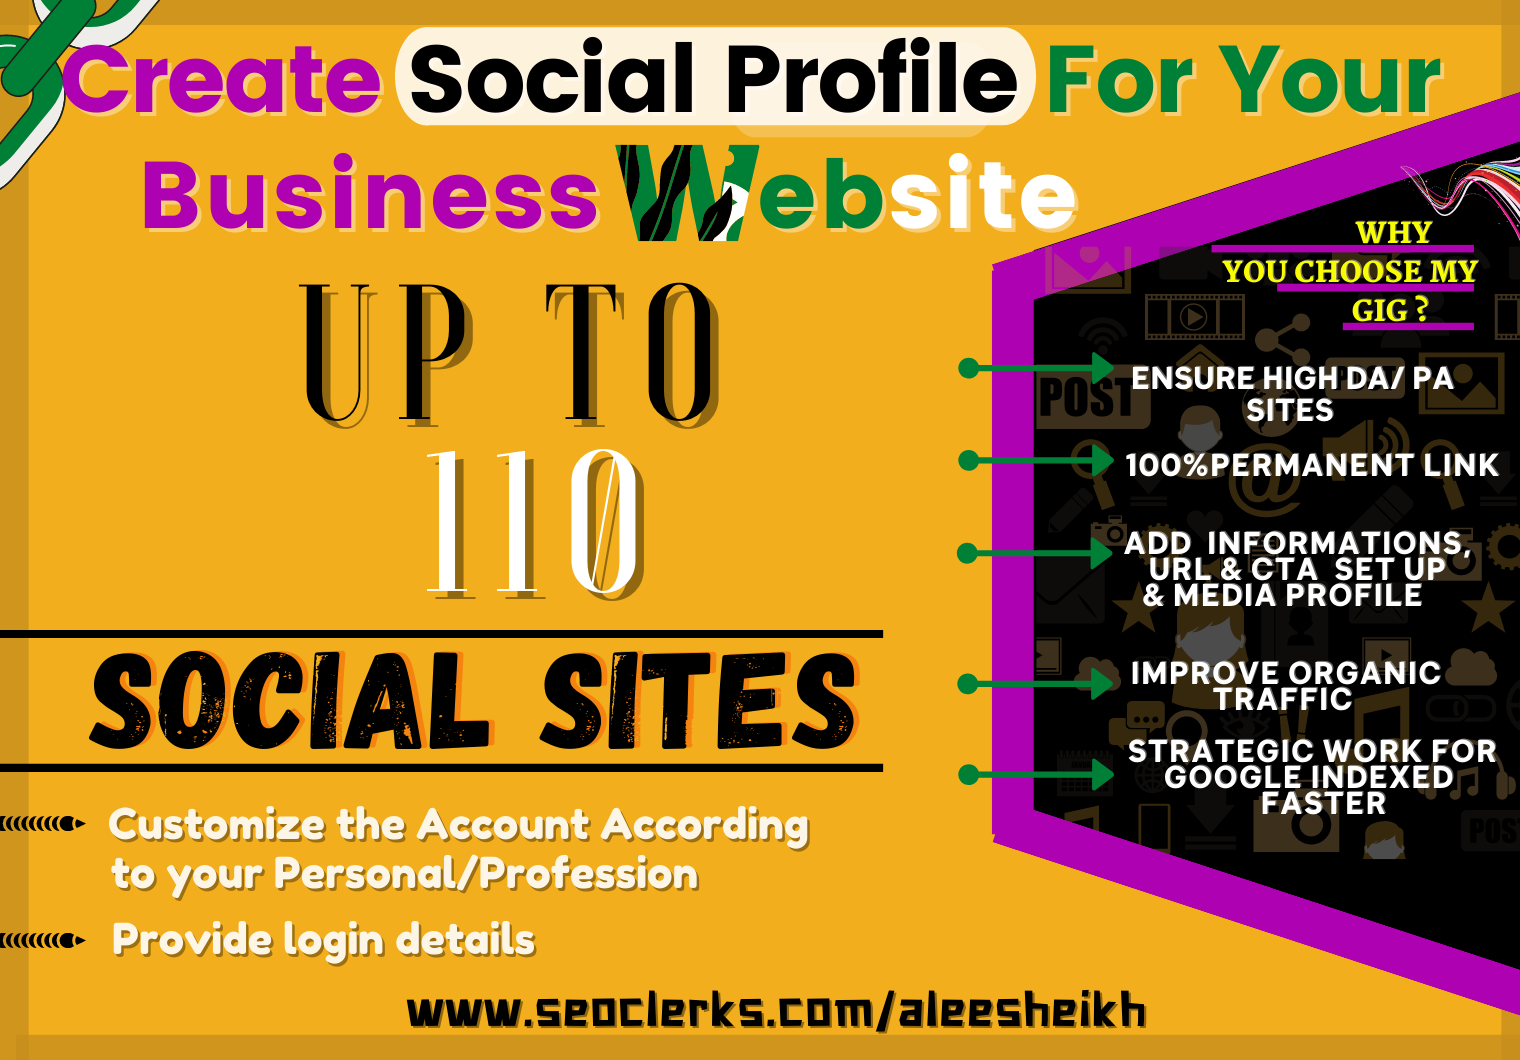 I will Setup 110 Social Profile for branding your business & Get strong backlink for website